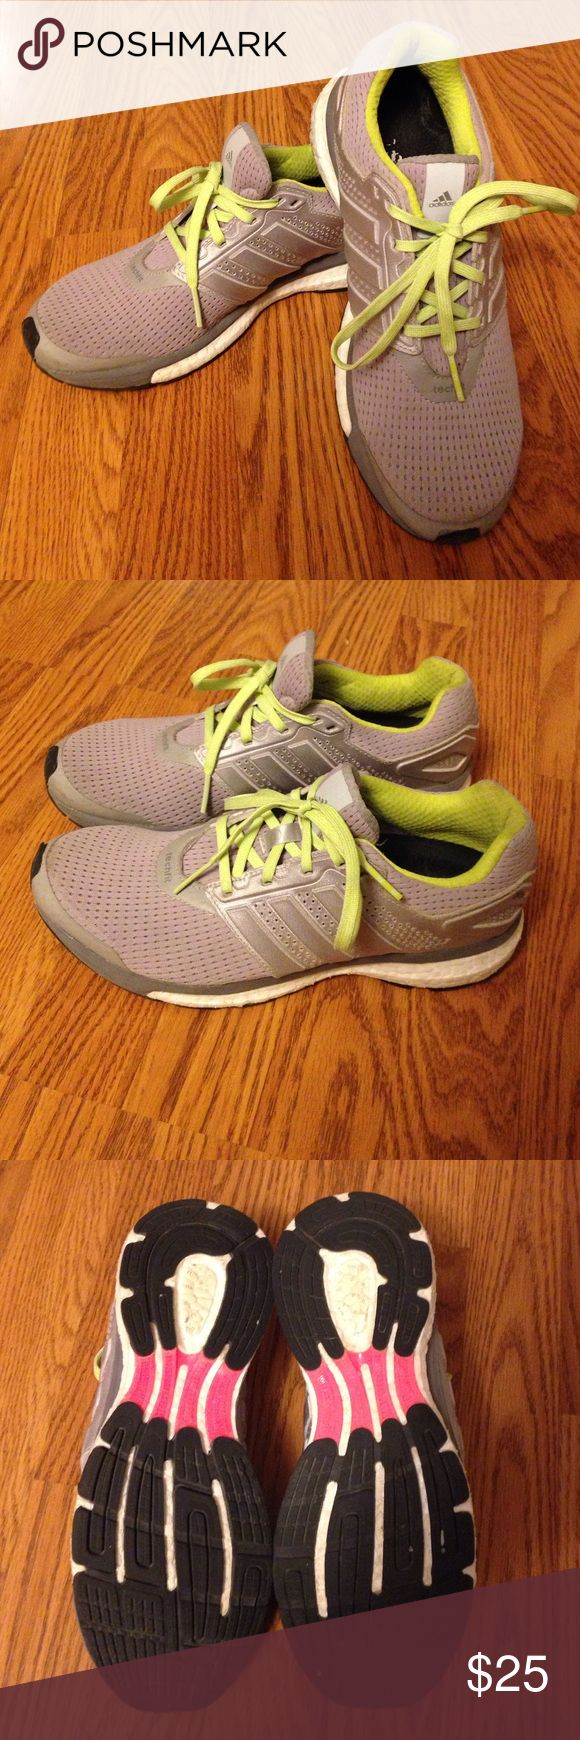 Like new! Adidas women's running shoe. Adidas boost, Supernova running shoes. Size 8.5. Excellent condition, very light wear. Adidas Shoes Athletic Shoes